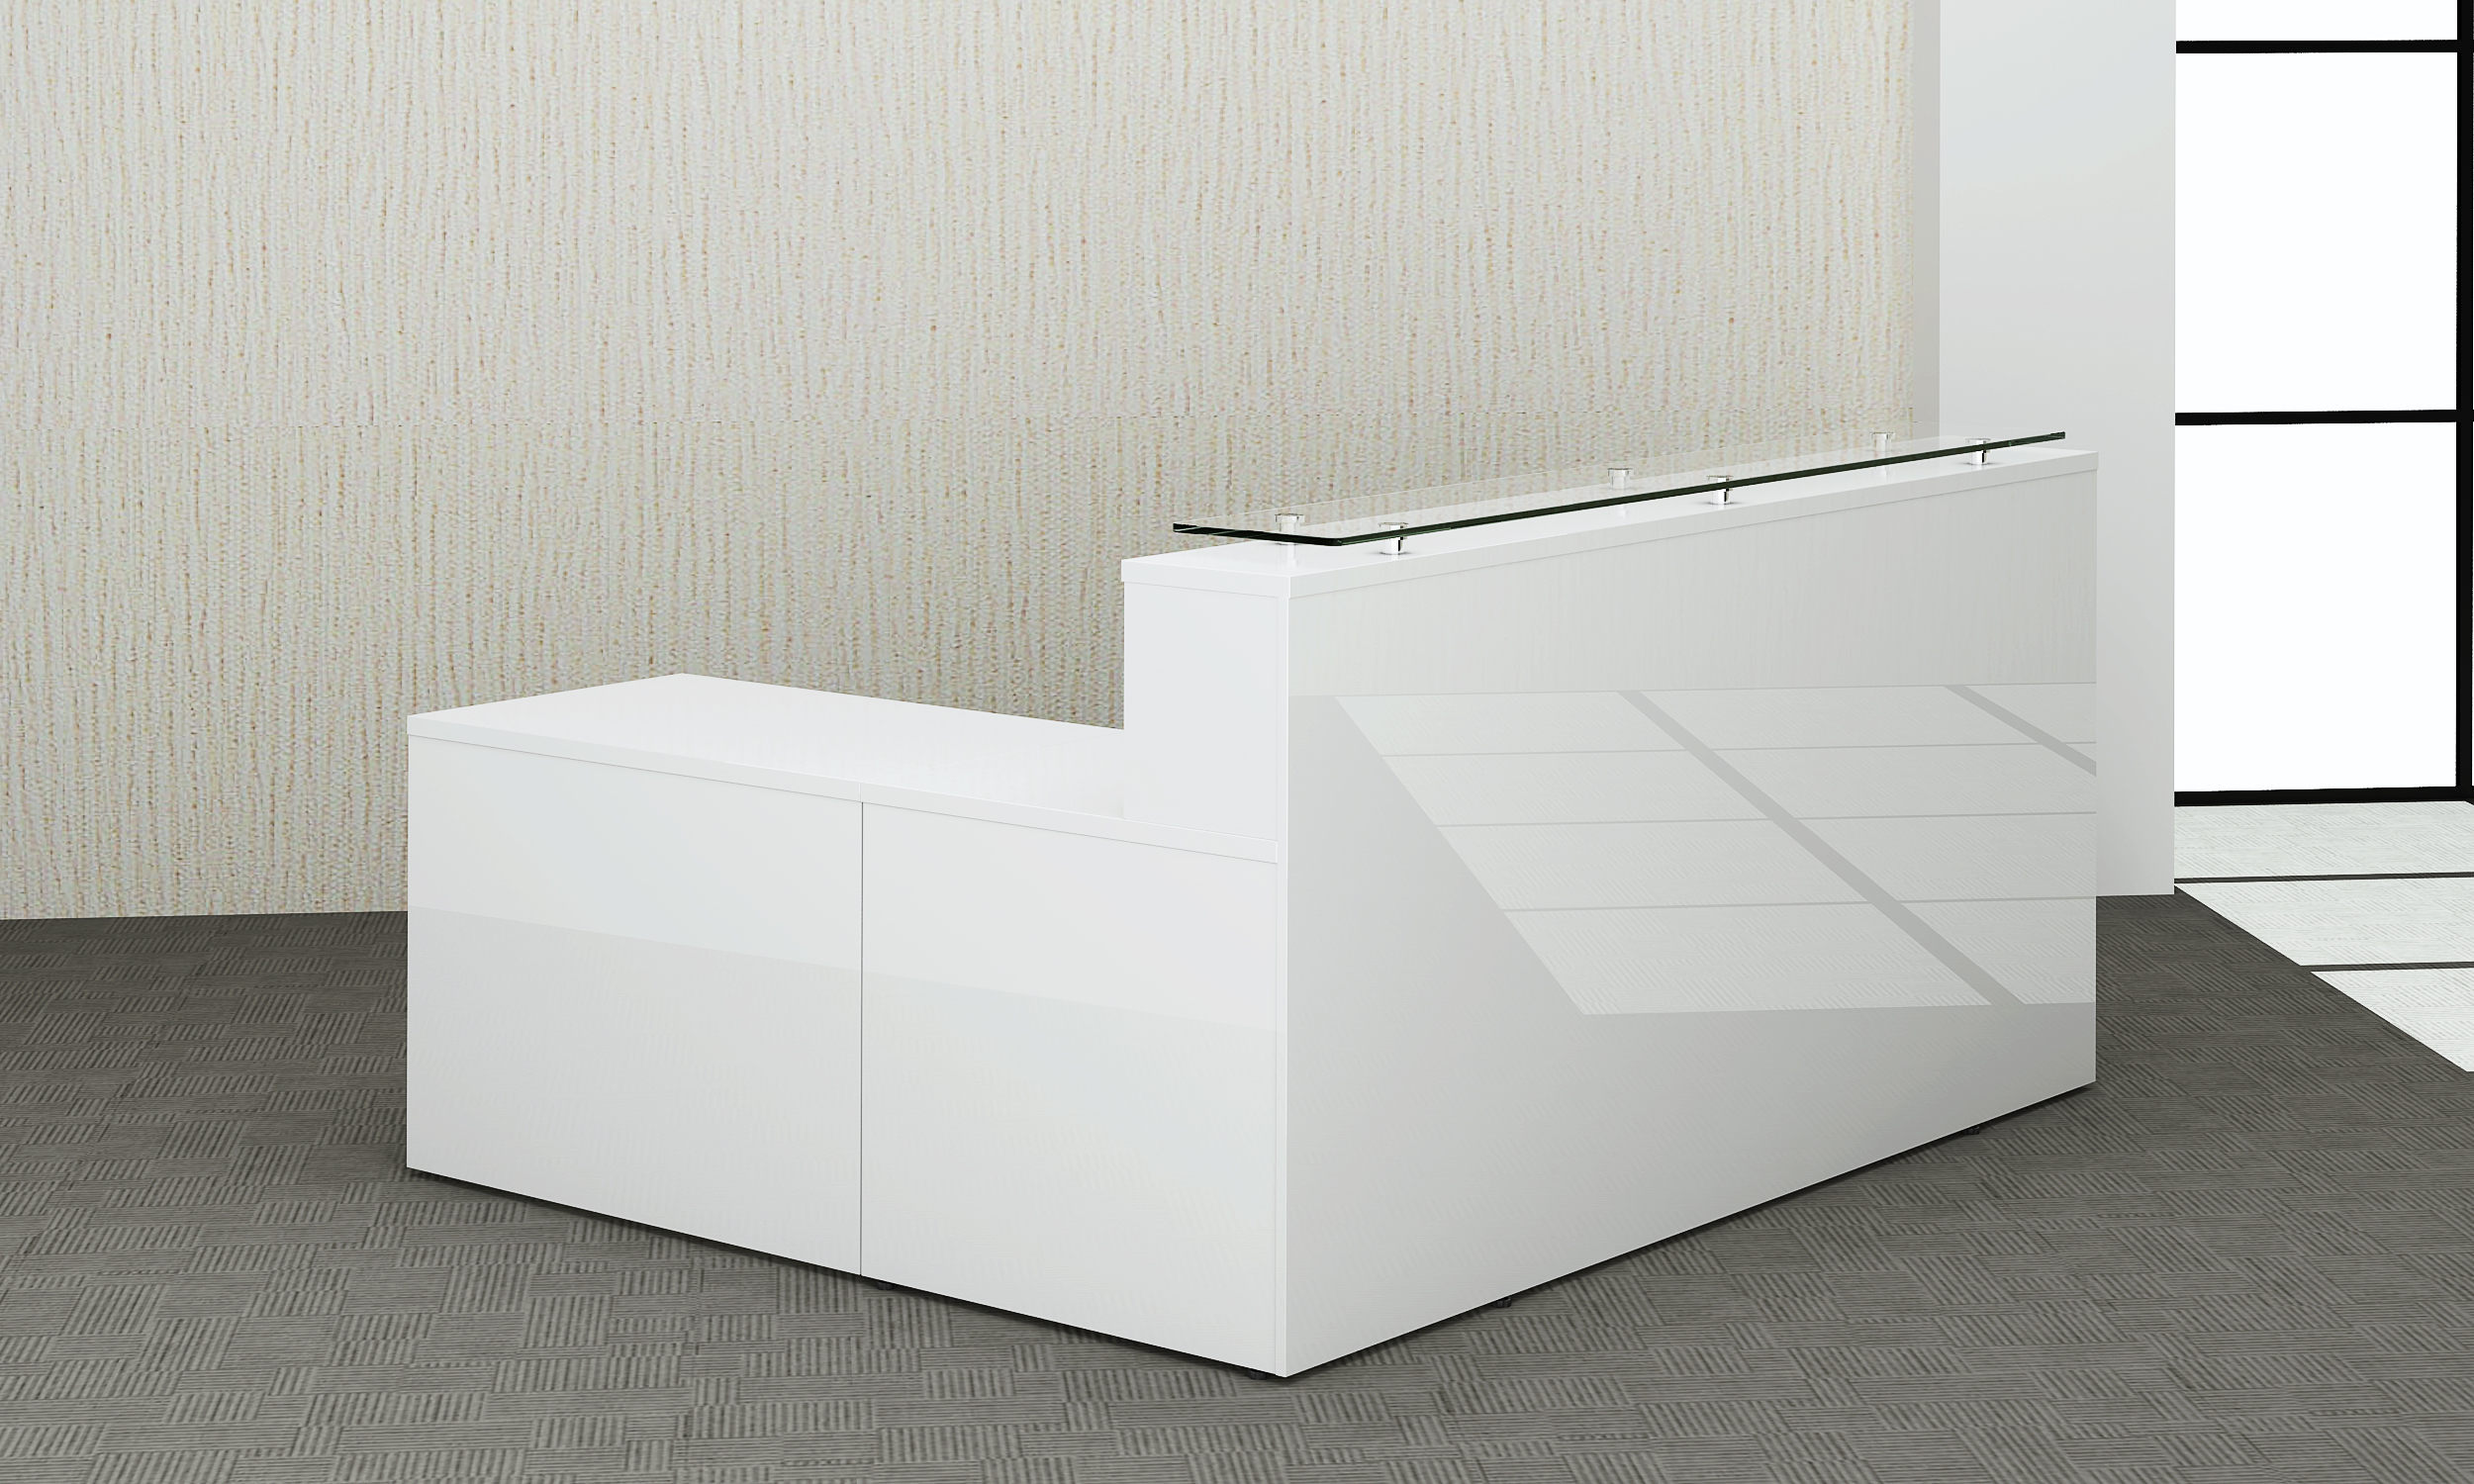 White high Gloss Reception Counter | Office Furniture Solutions 4U